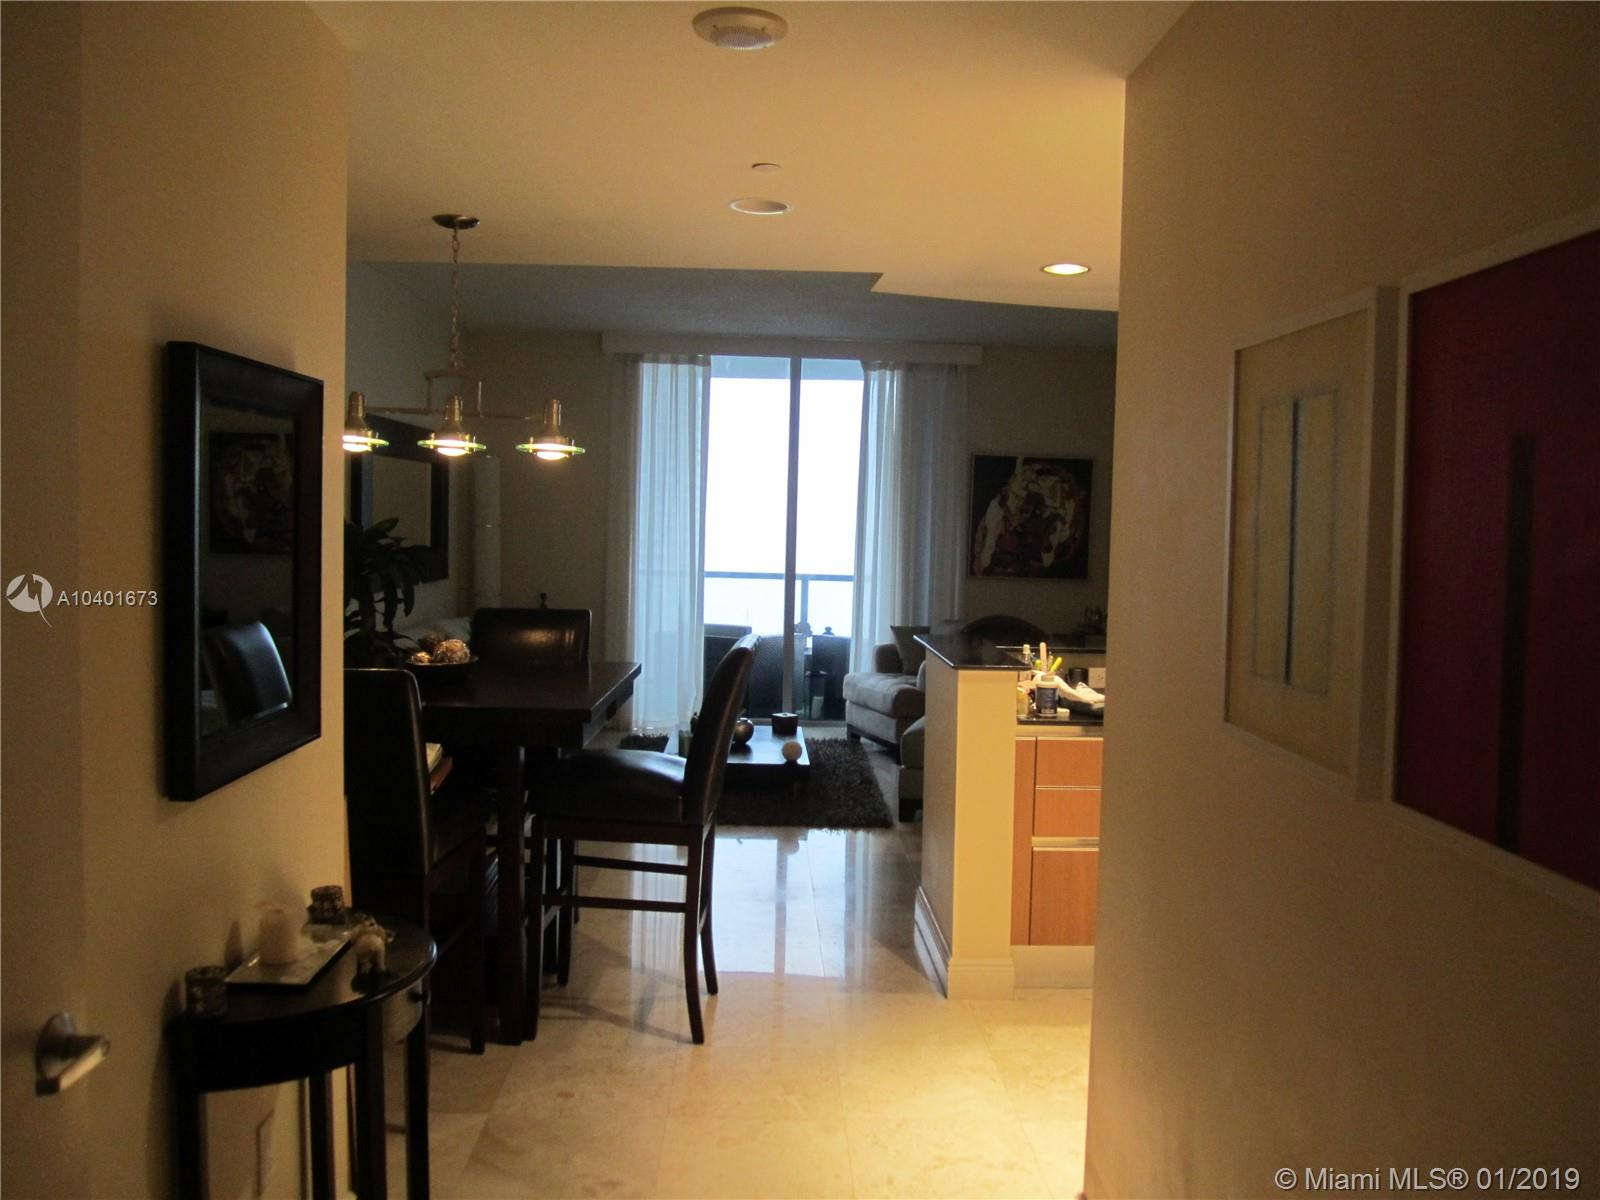 1060 Brickell West Tower #1805 - 1060 Brickell Ave #1805, Miami, FL 33131